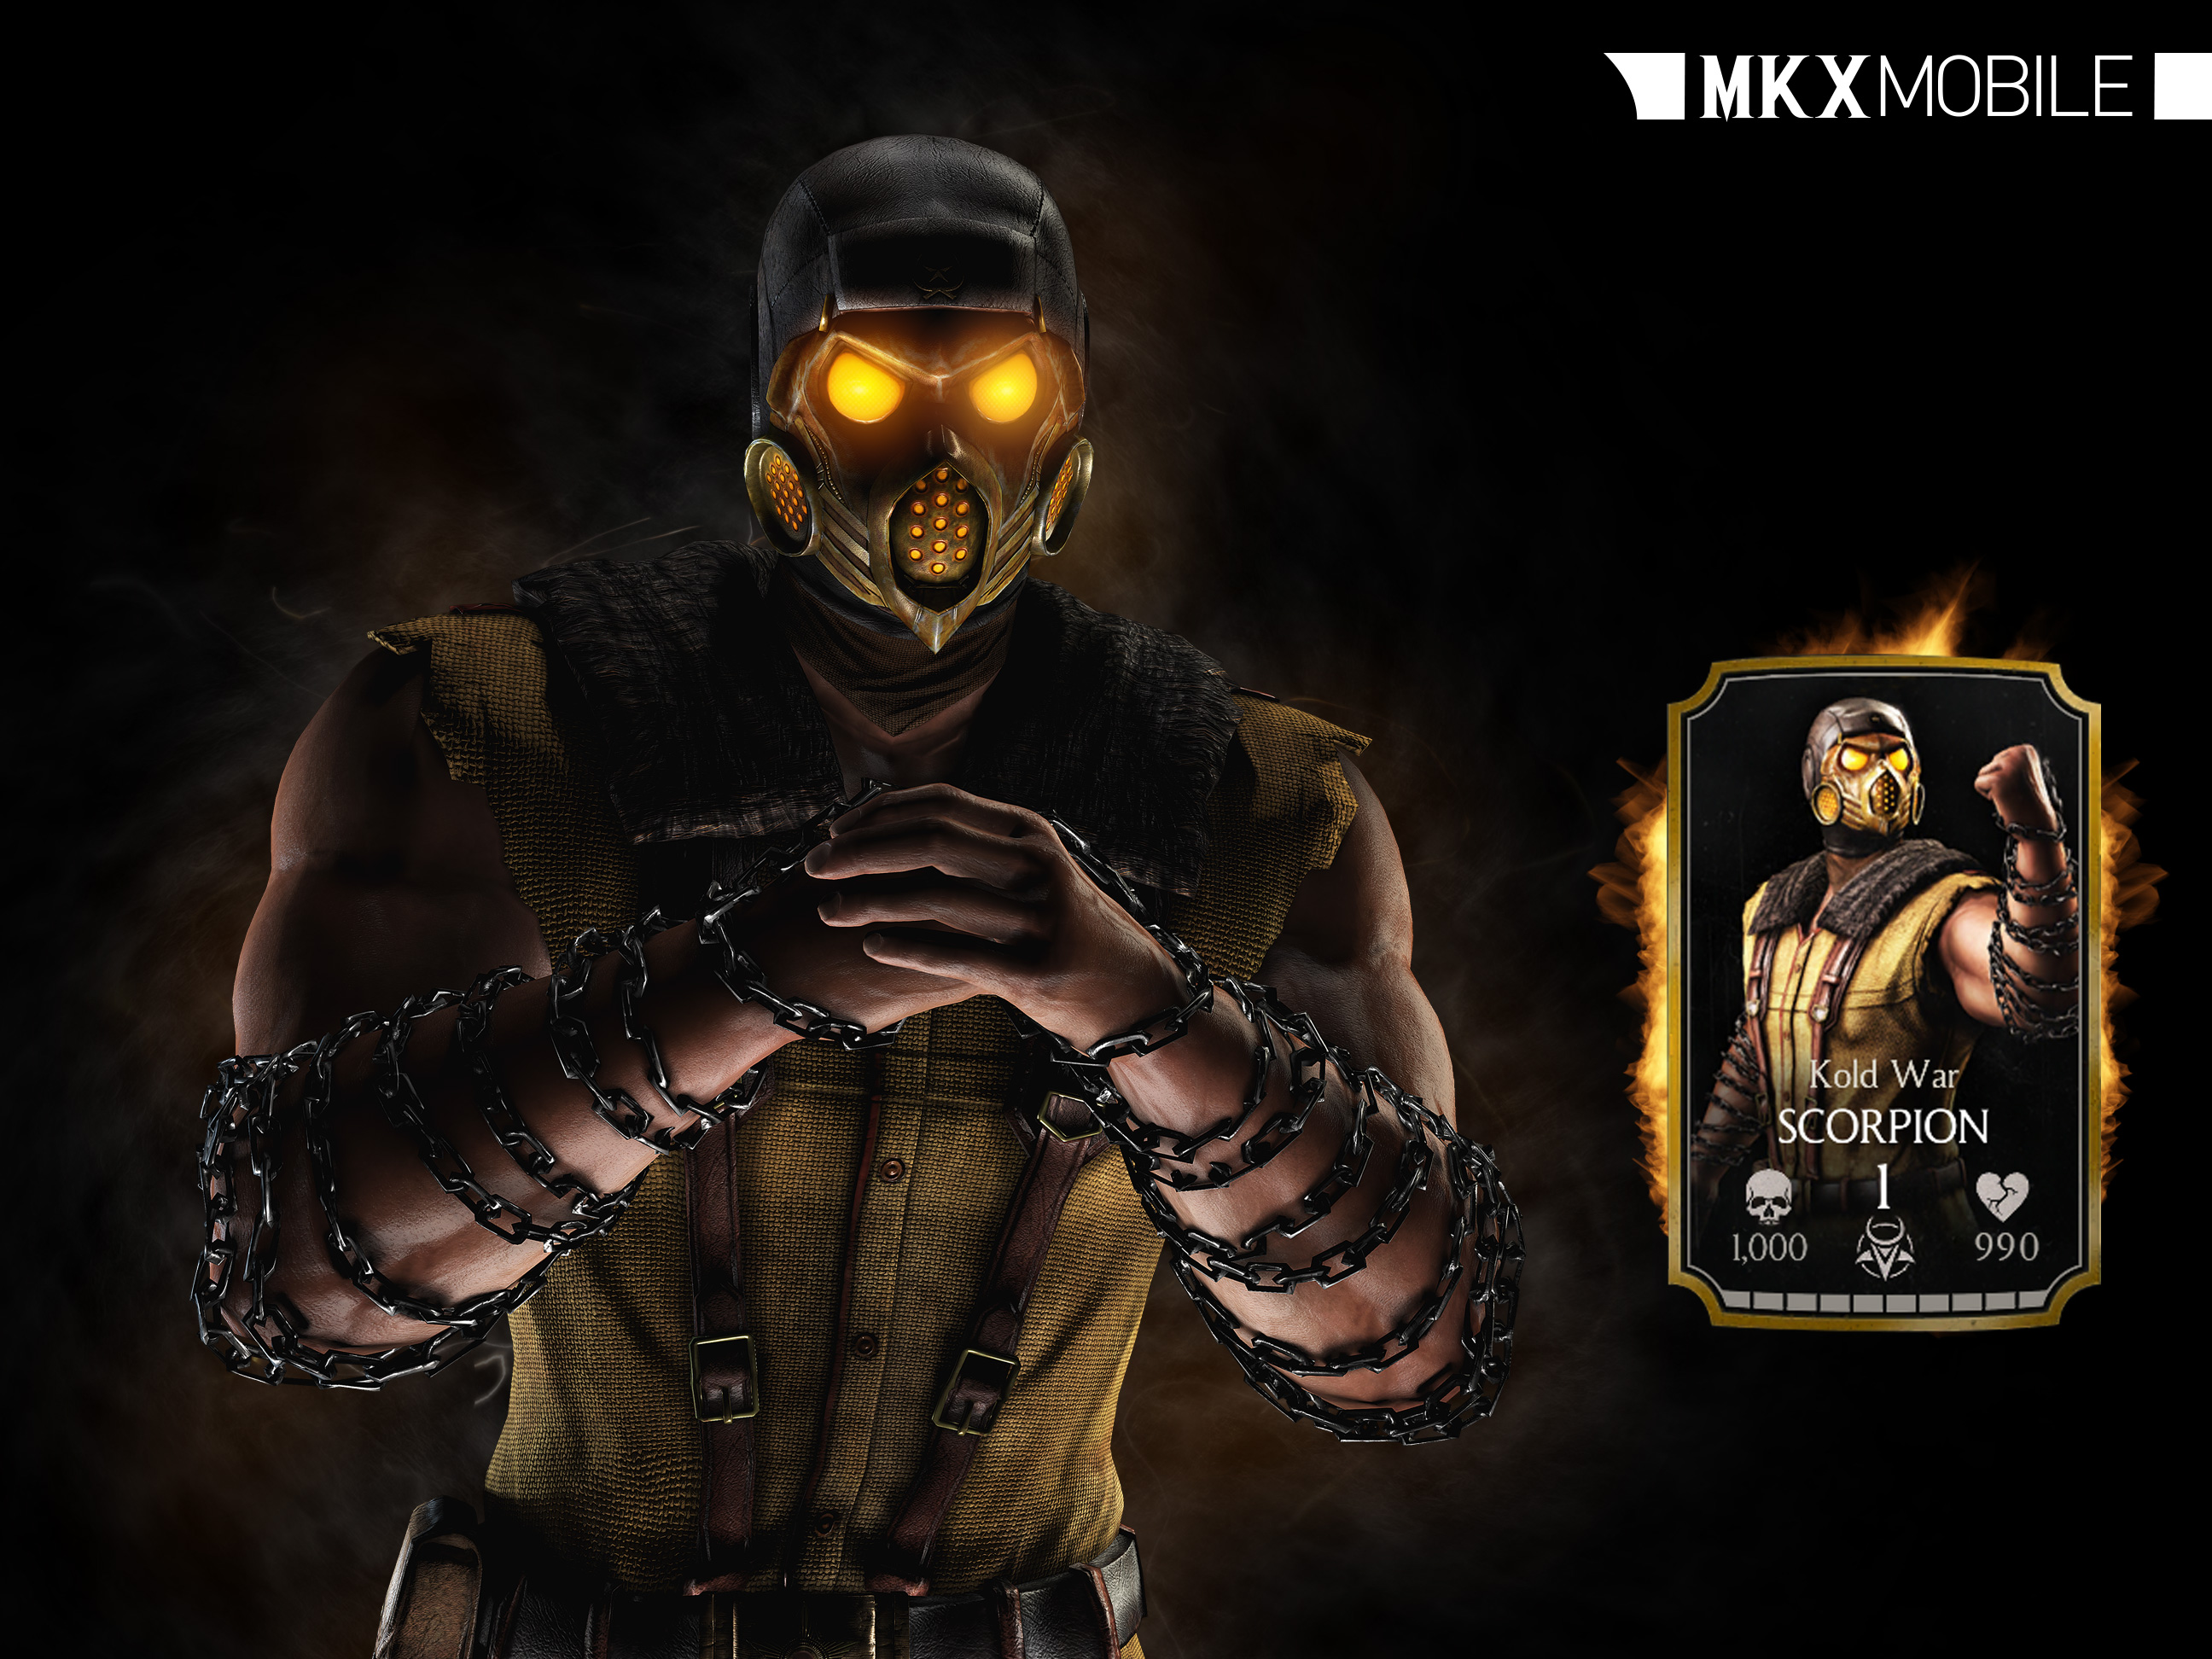 Kold War Scorpion Mortal Kombat X Mobile